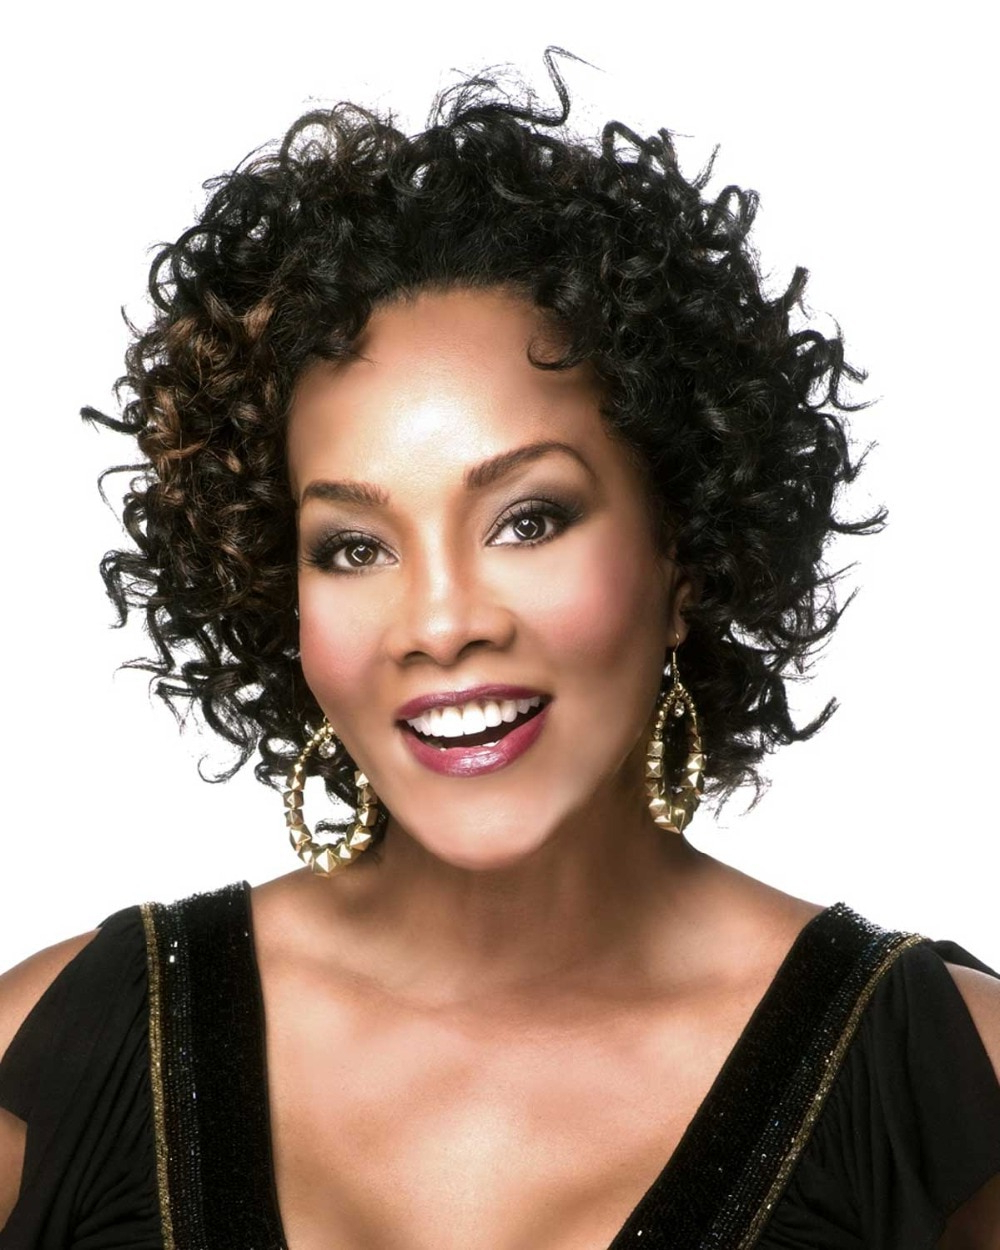 Synthetic Hair Black Curly Short Wigs For Black Women Fashion Within Curly Short Hairstyles Black Women (View 25 of 25)